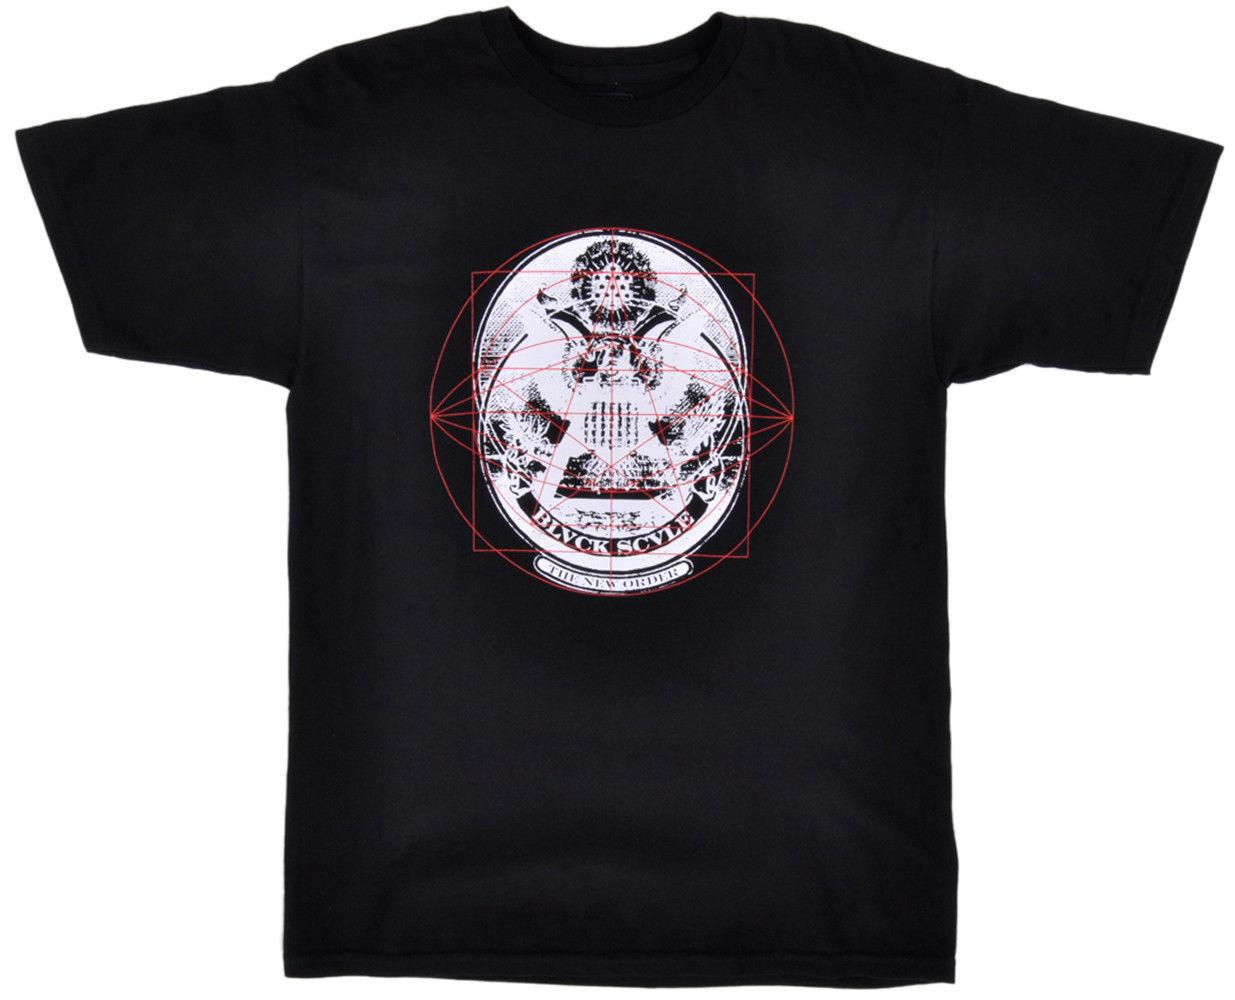 Black Scale New Order T-Shirt BLVCK SCVLE Herren Occult Fashion Top Black